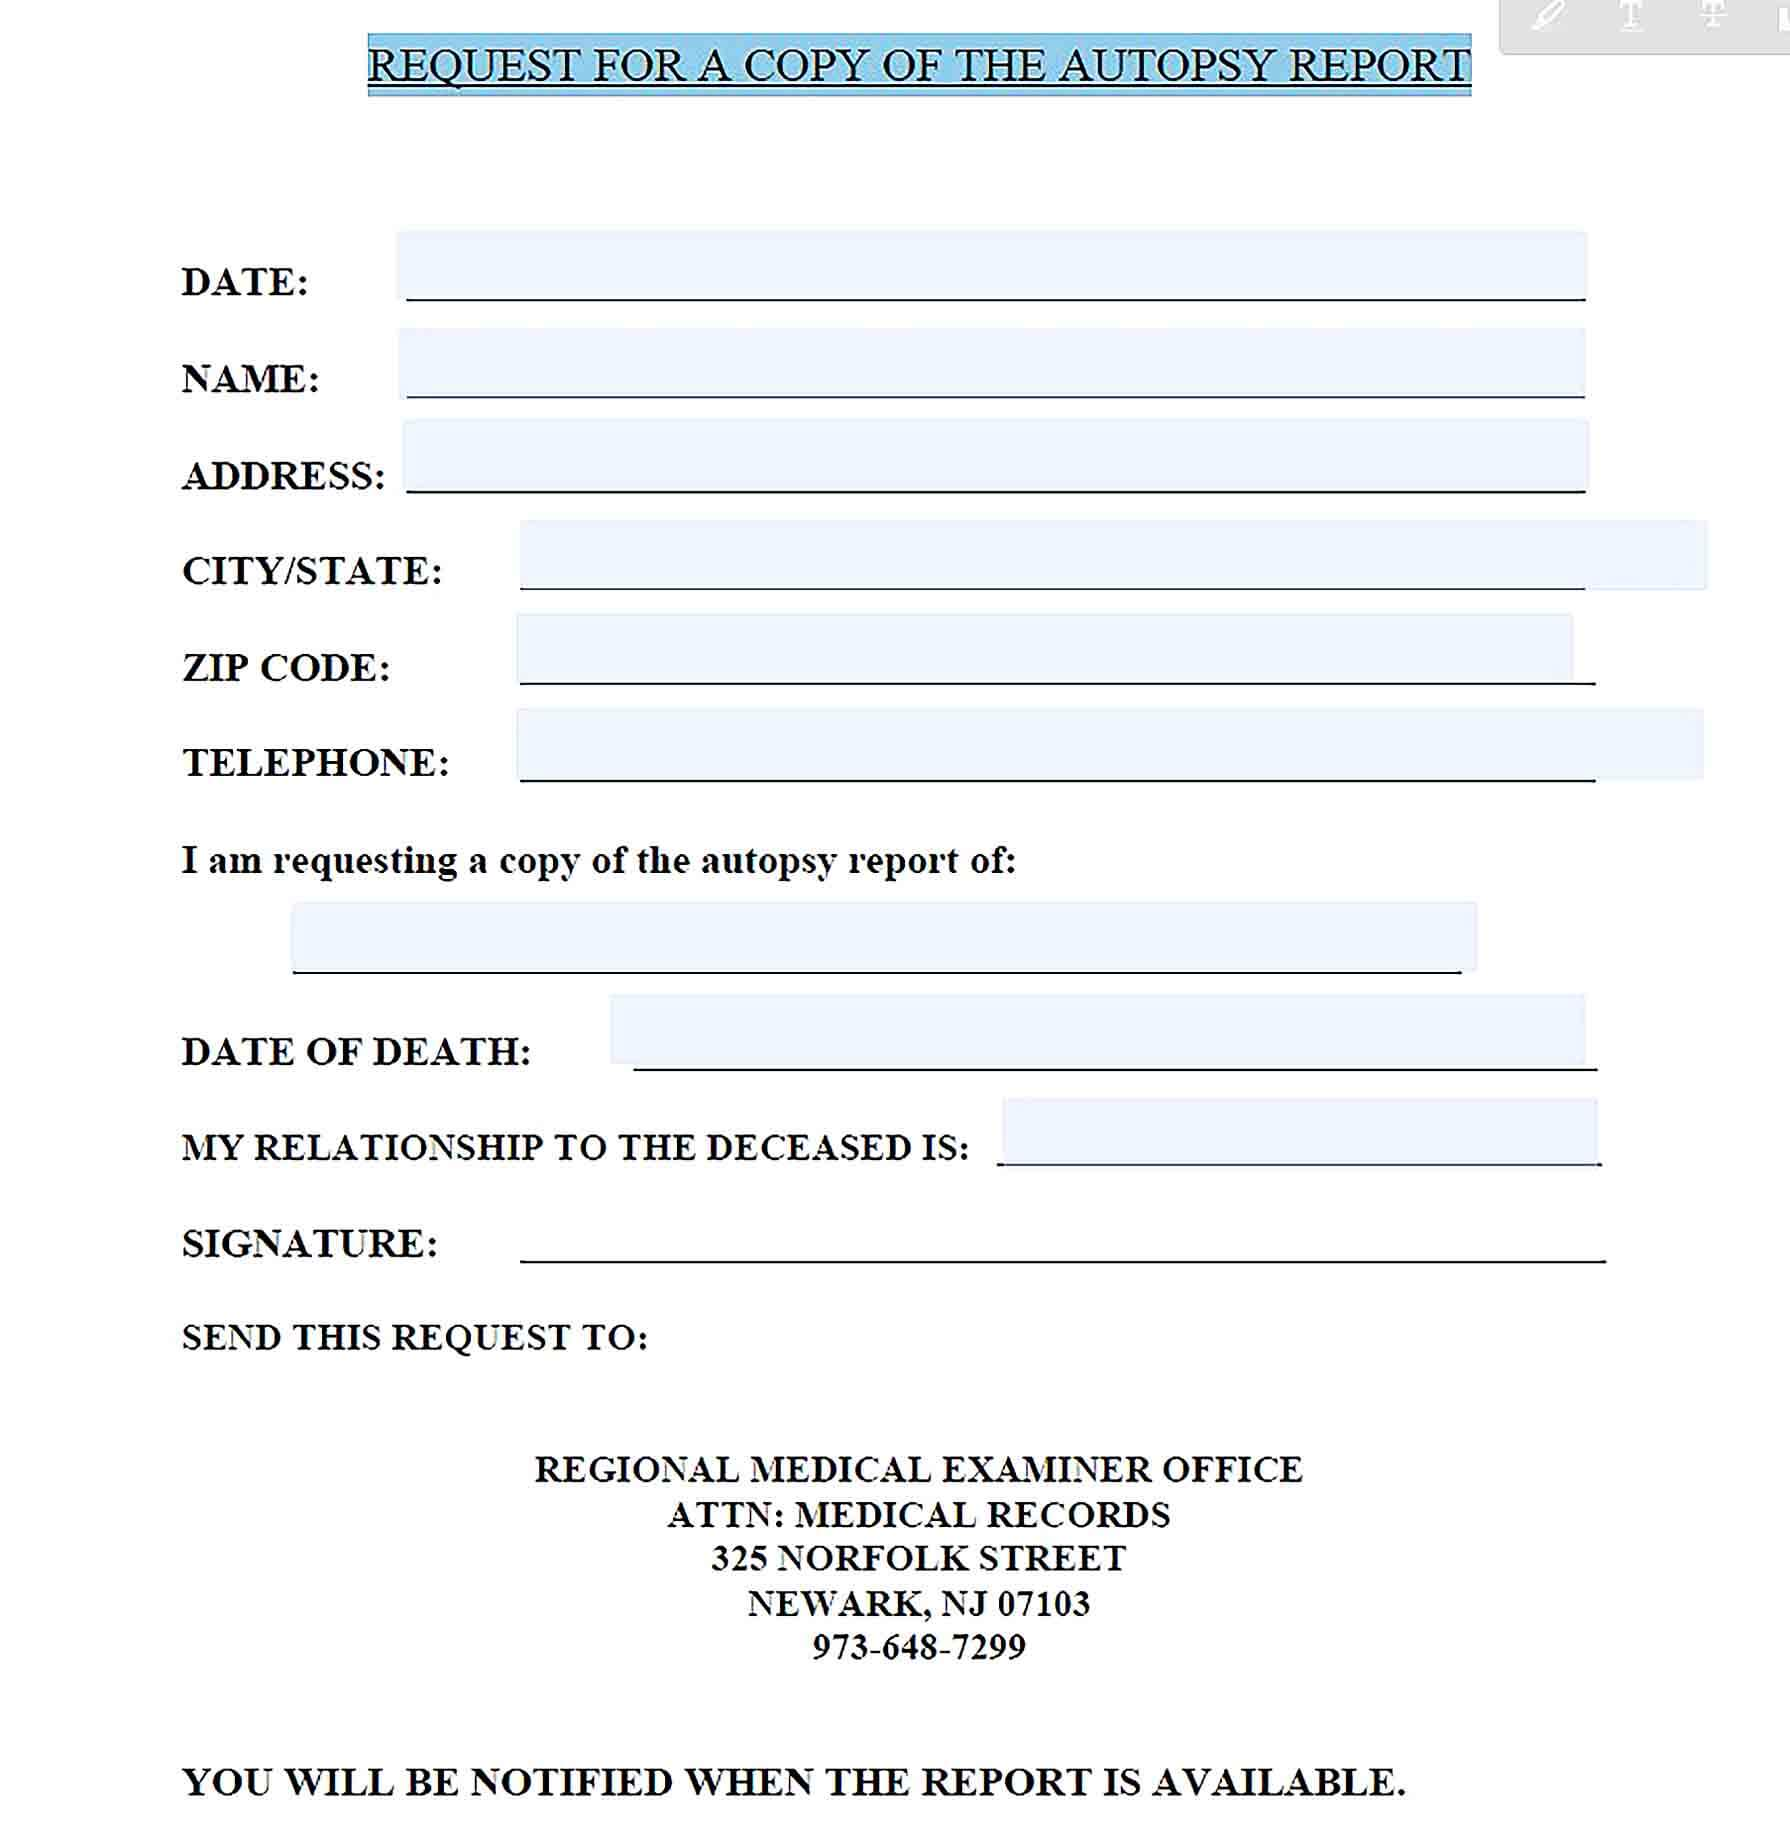 Sample Request for Autopsy Report Template